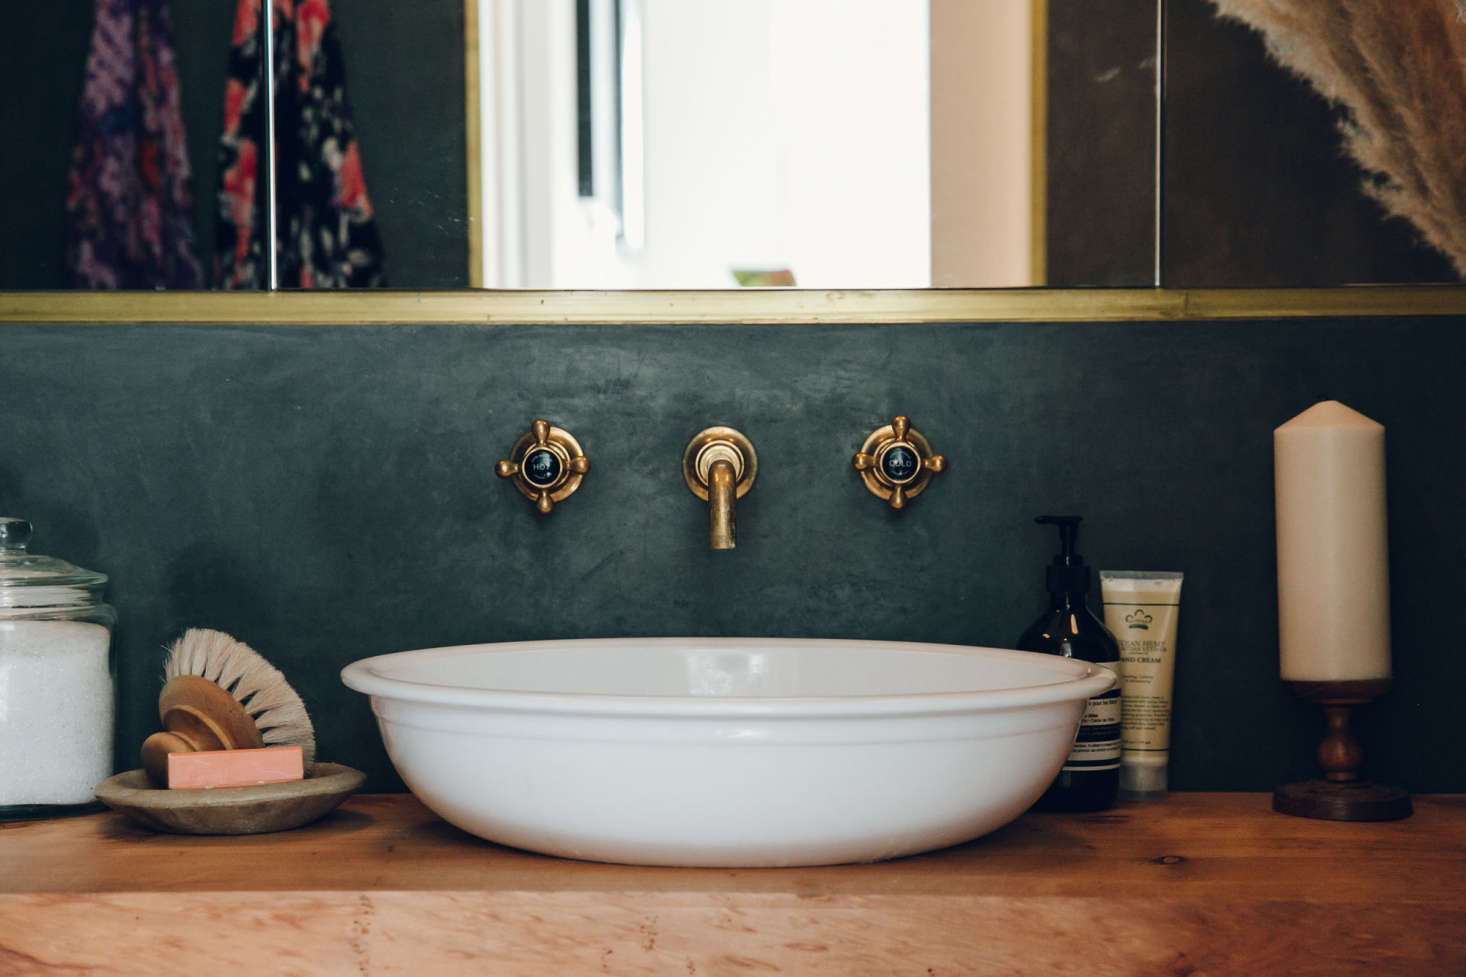 A Radford 51 sink made of limestone and resinfrom Victoria &Albert.